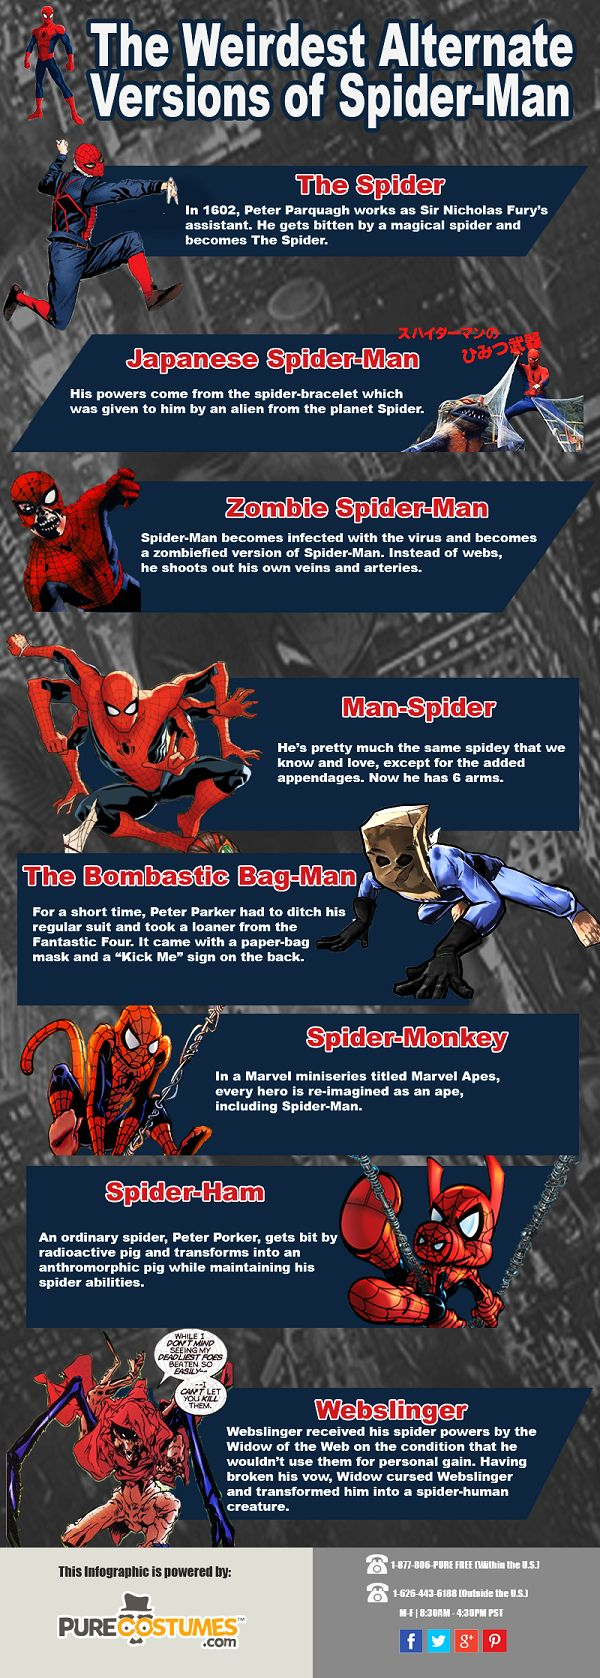 A Brief History Of The Weirdest Alternate Versions Of Spider-Man [Infographic]